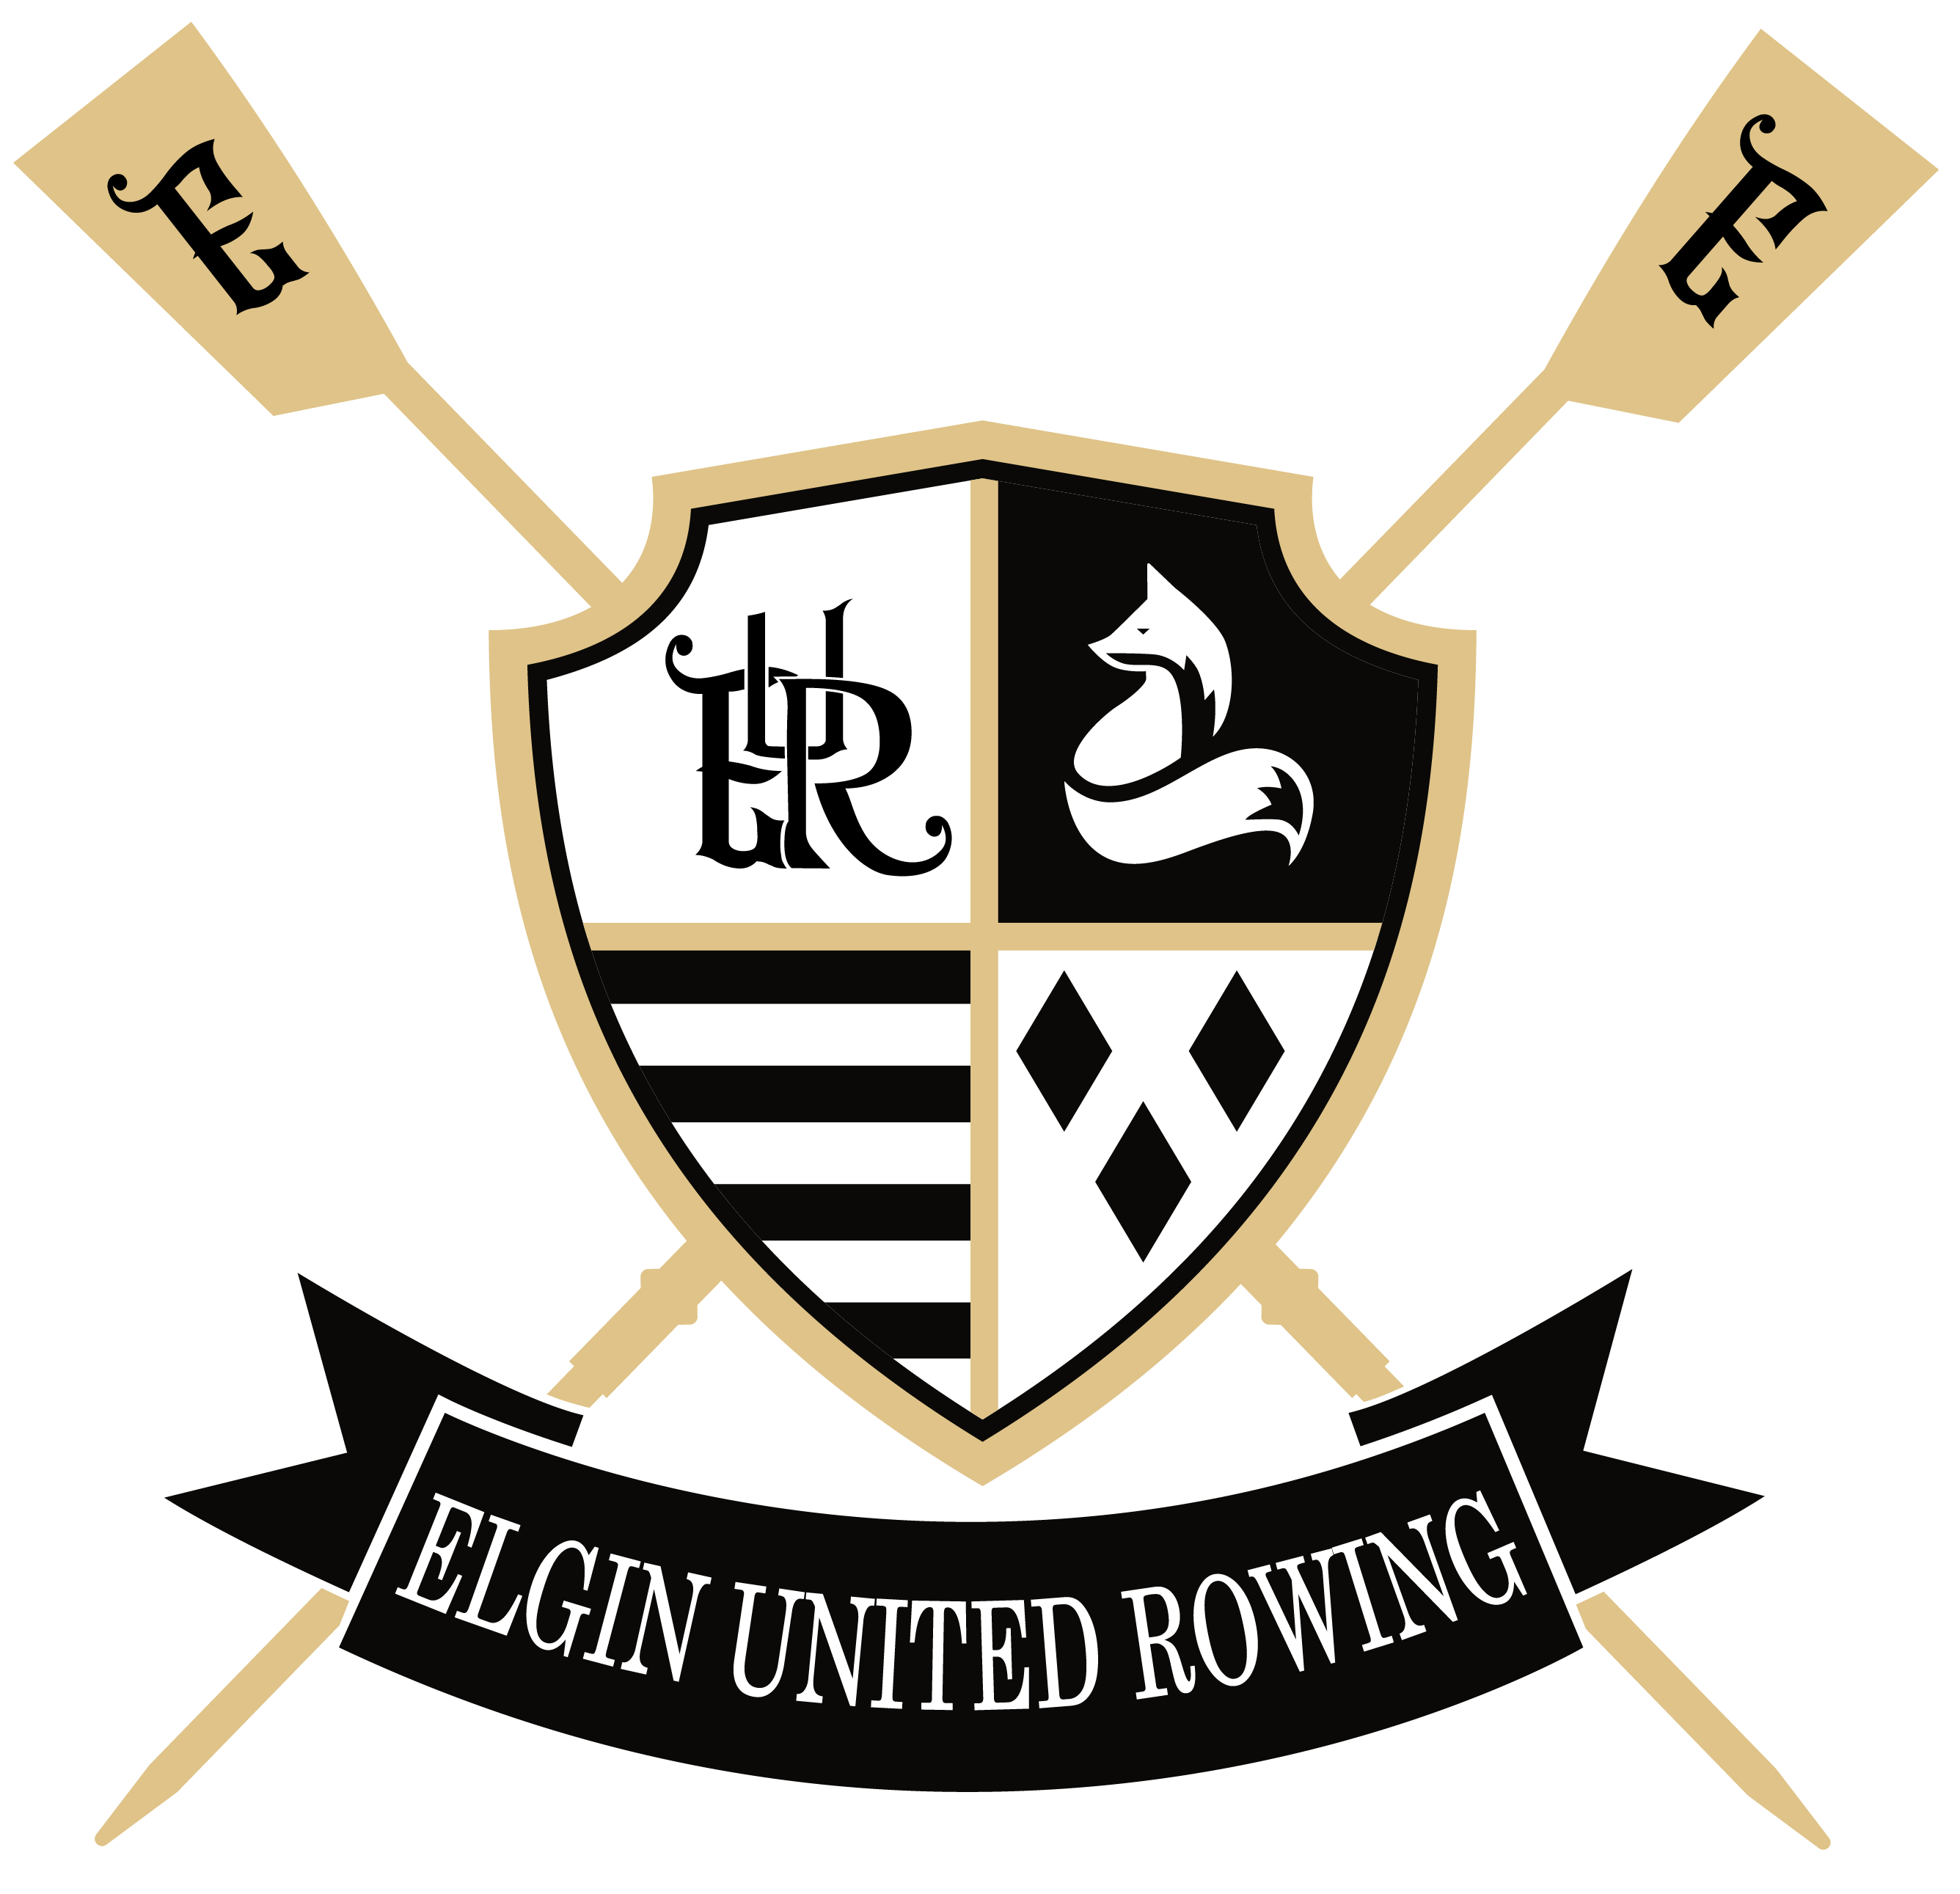 Elgin United Rowing Club